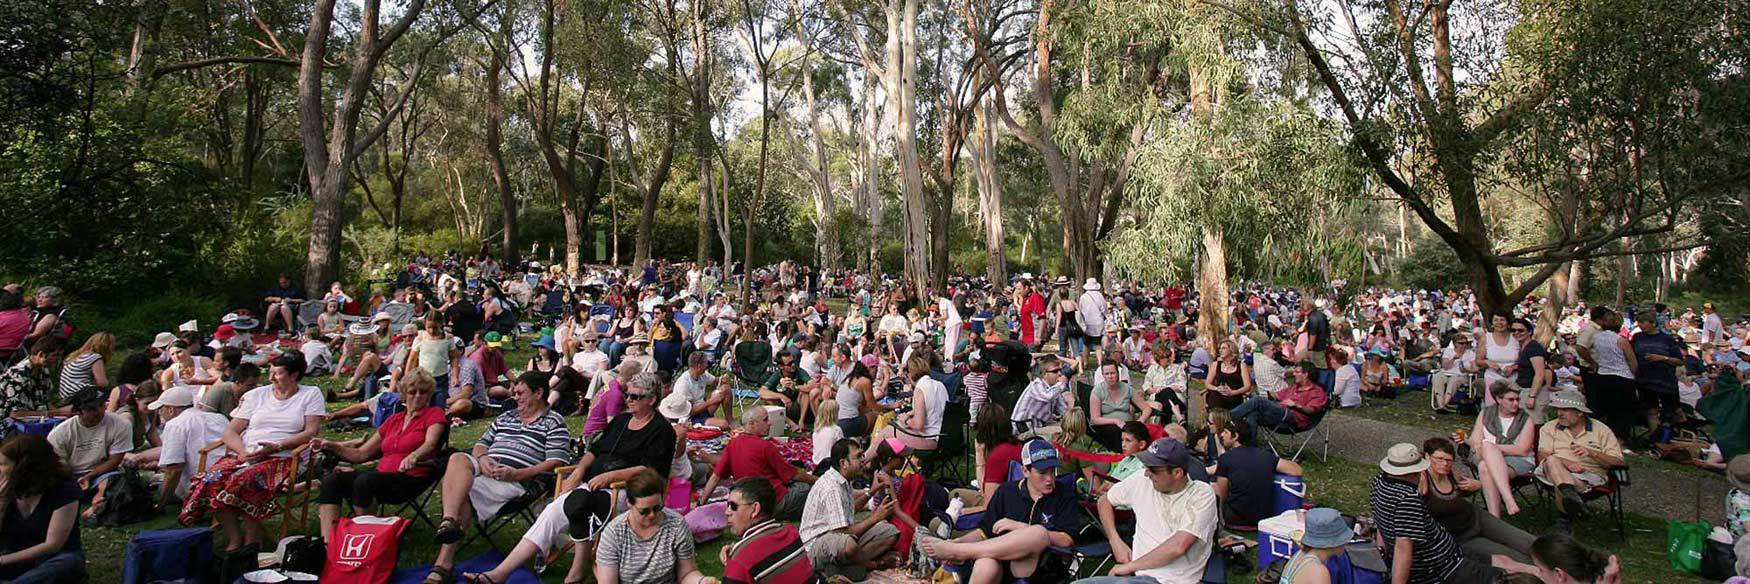 2016 summer sounds concert series canberra for Botanical gardens concert series